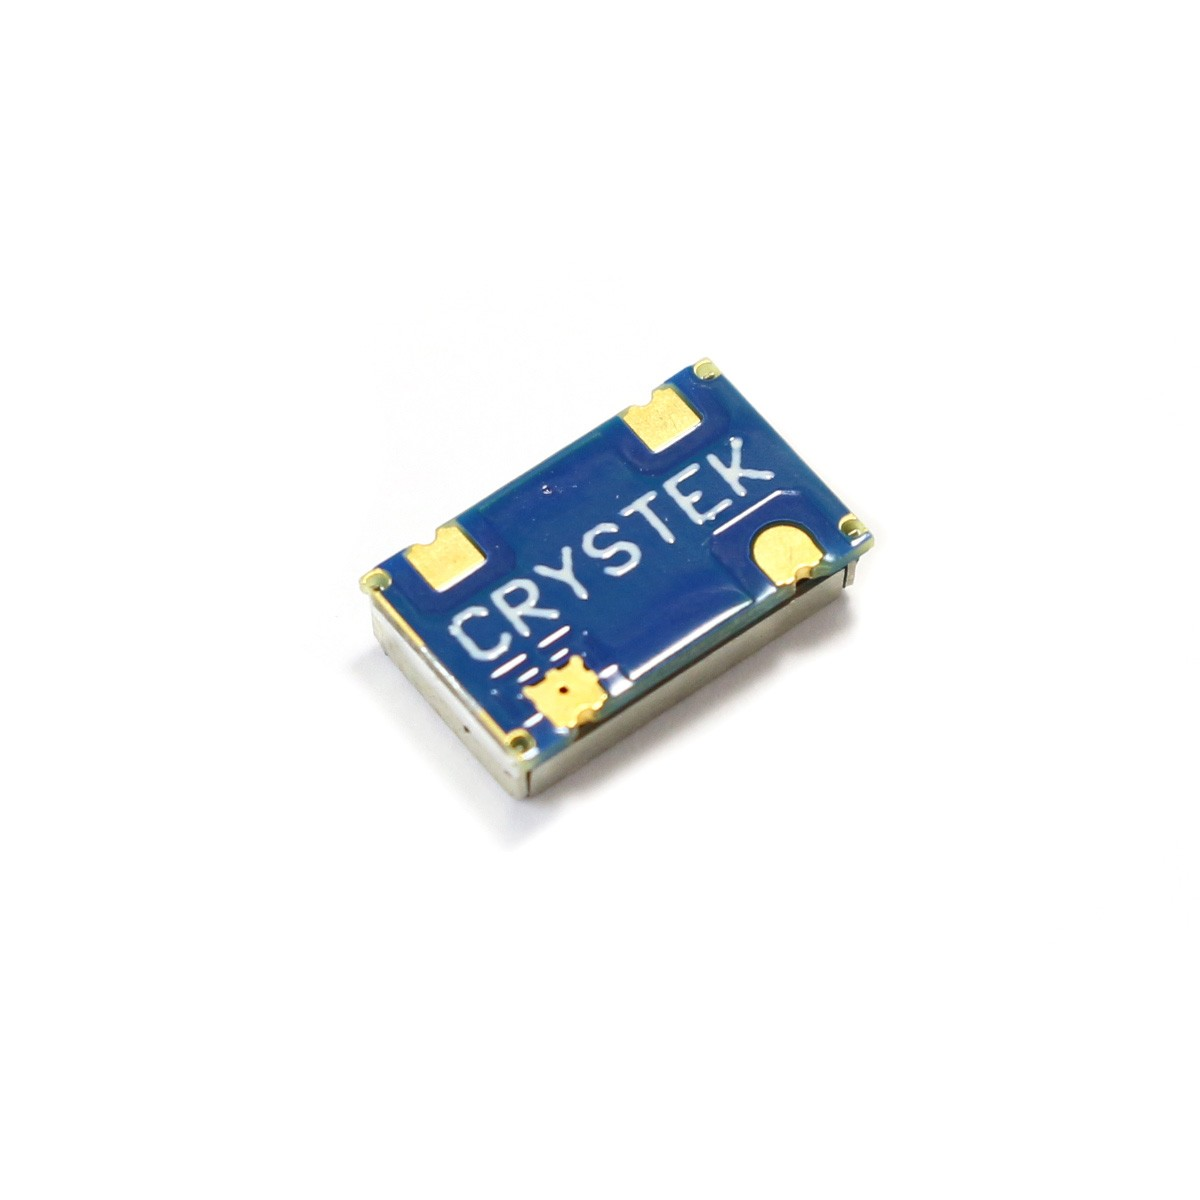 CRYSTEK Ultra-Low Phase Noise Clock 24.576MHz 3.3V 25ppm HCMOS